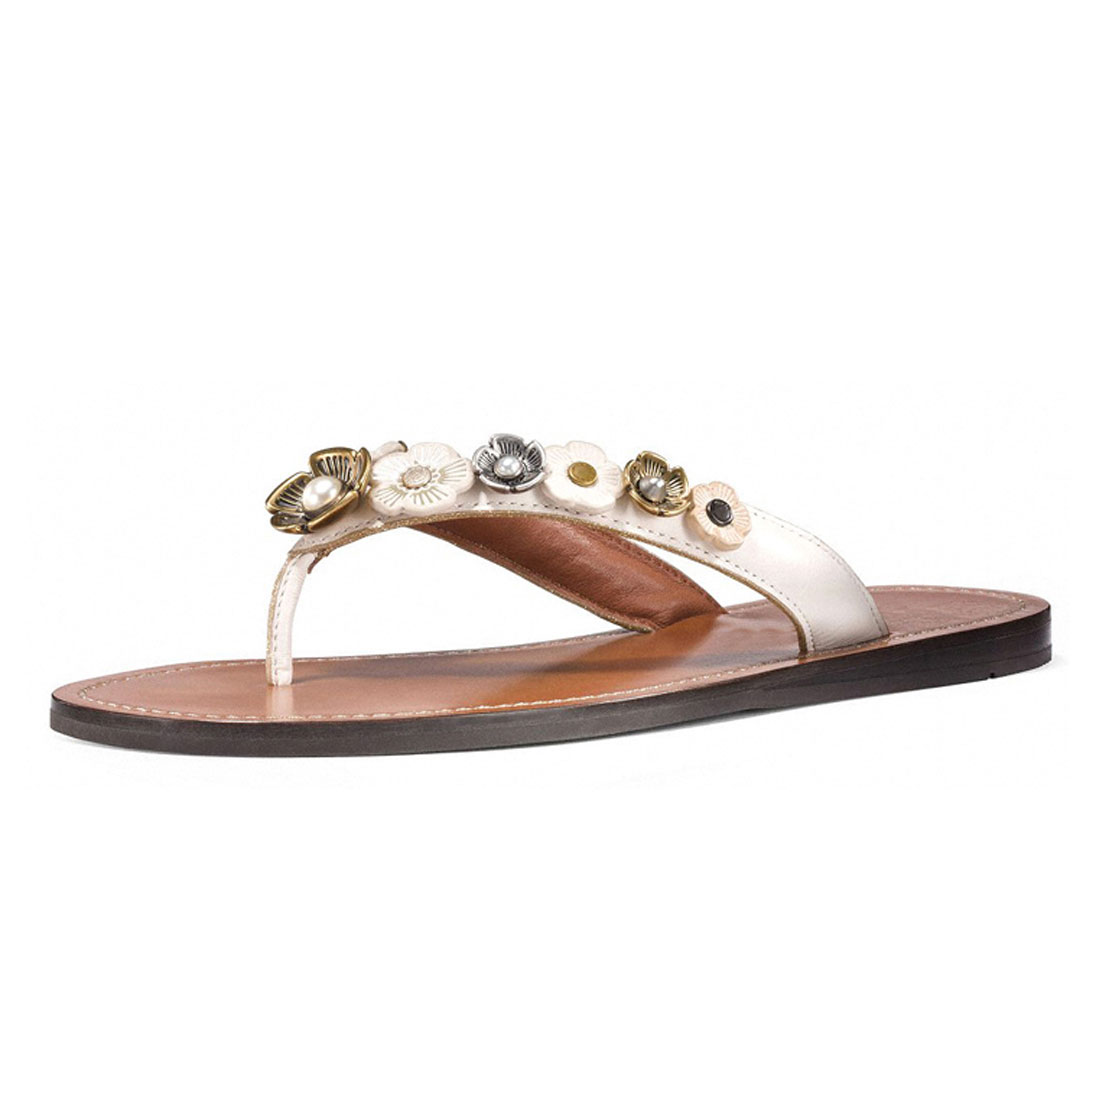 factory whosales flipflop girls leather ankle strap flat thong sandal YH1221